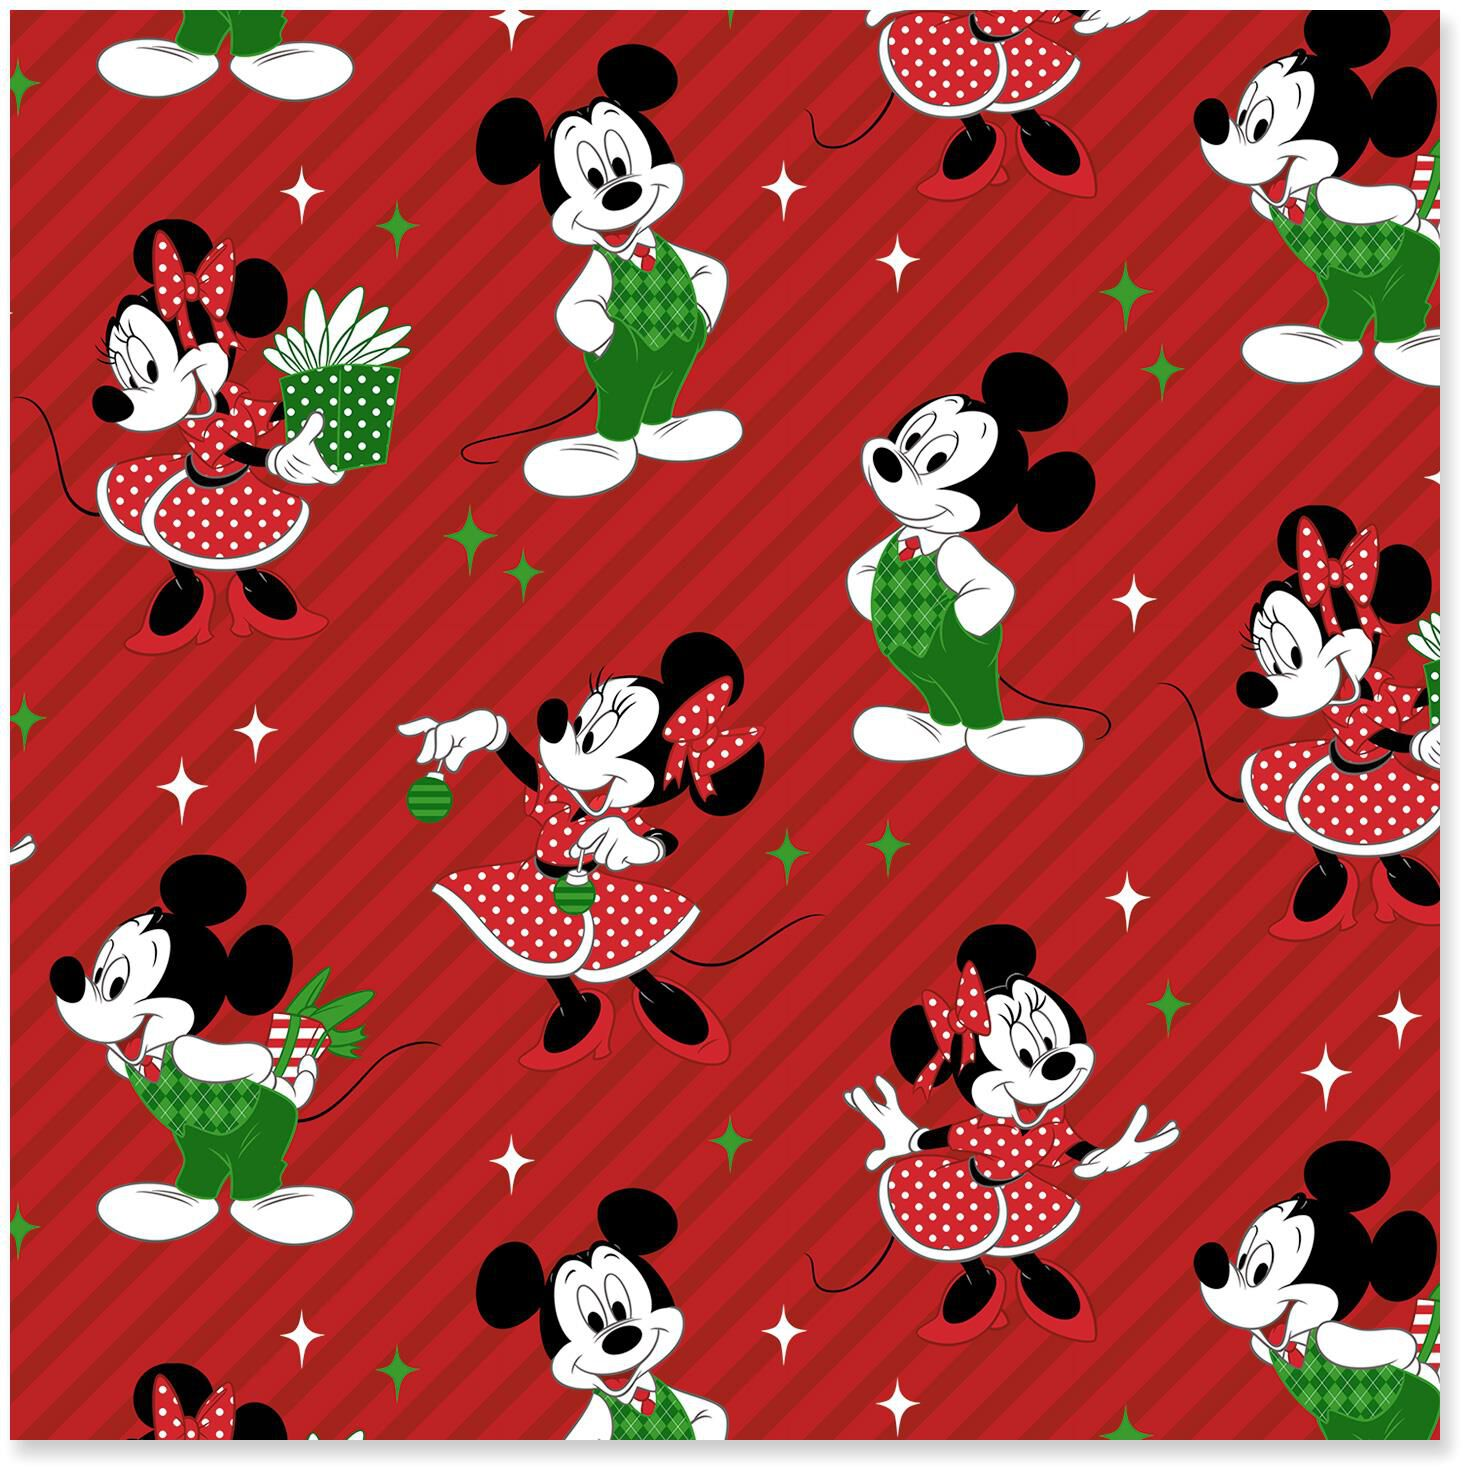 Disney Mickey and Minnie Jumbo Christmas Wrapping Paper Roll, 80 sq ...